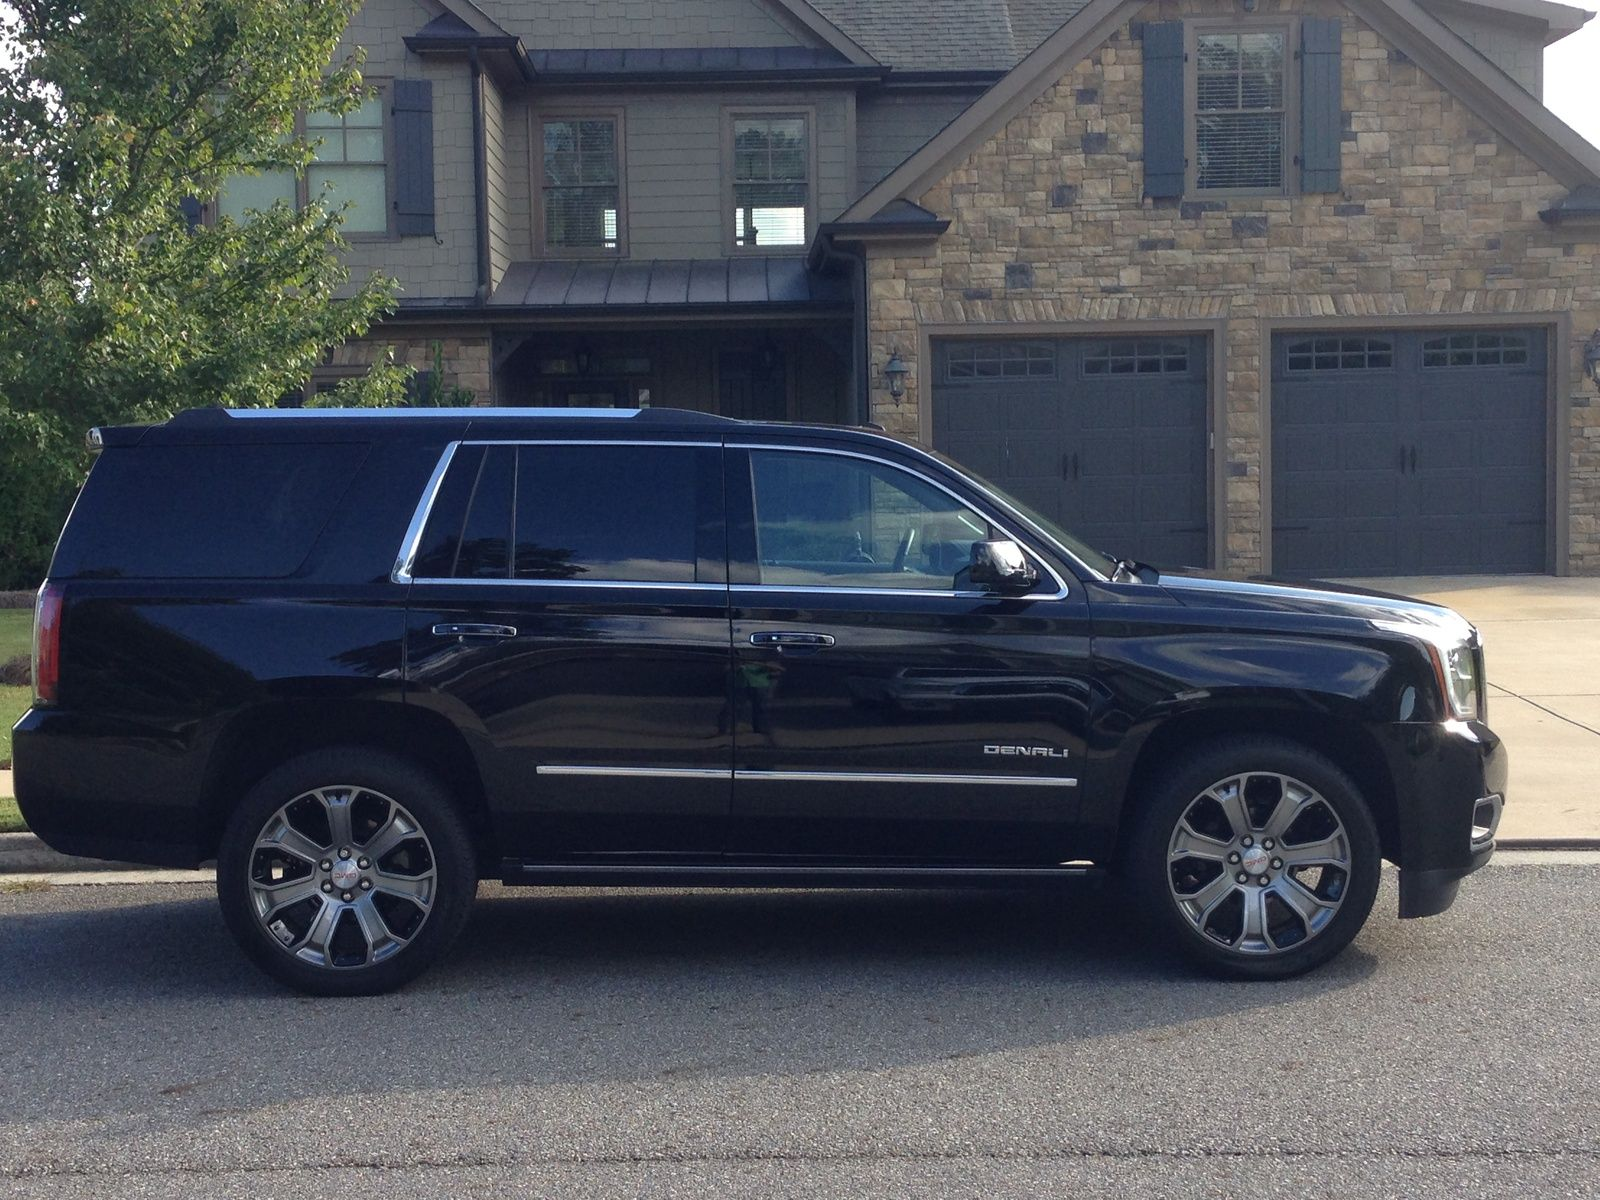 yukon review cars front denali the capsule about truth gmc of